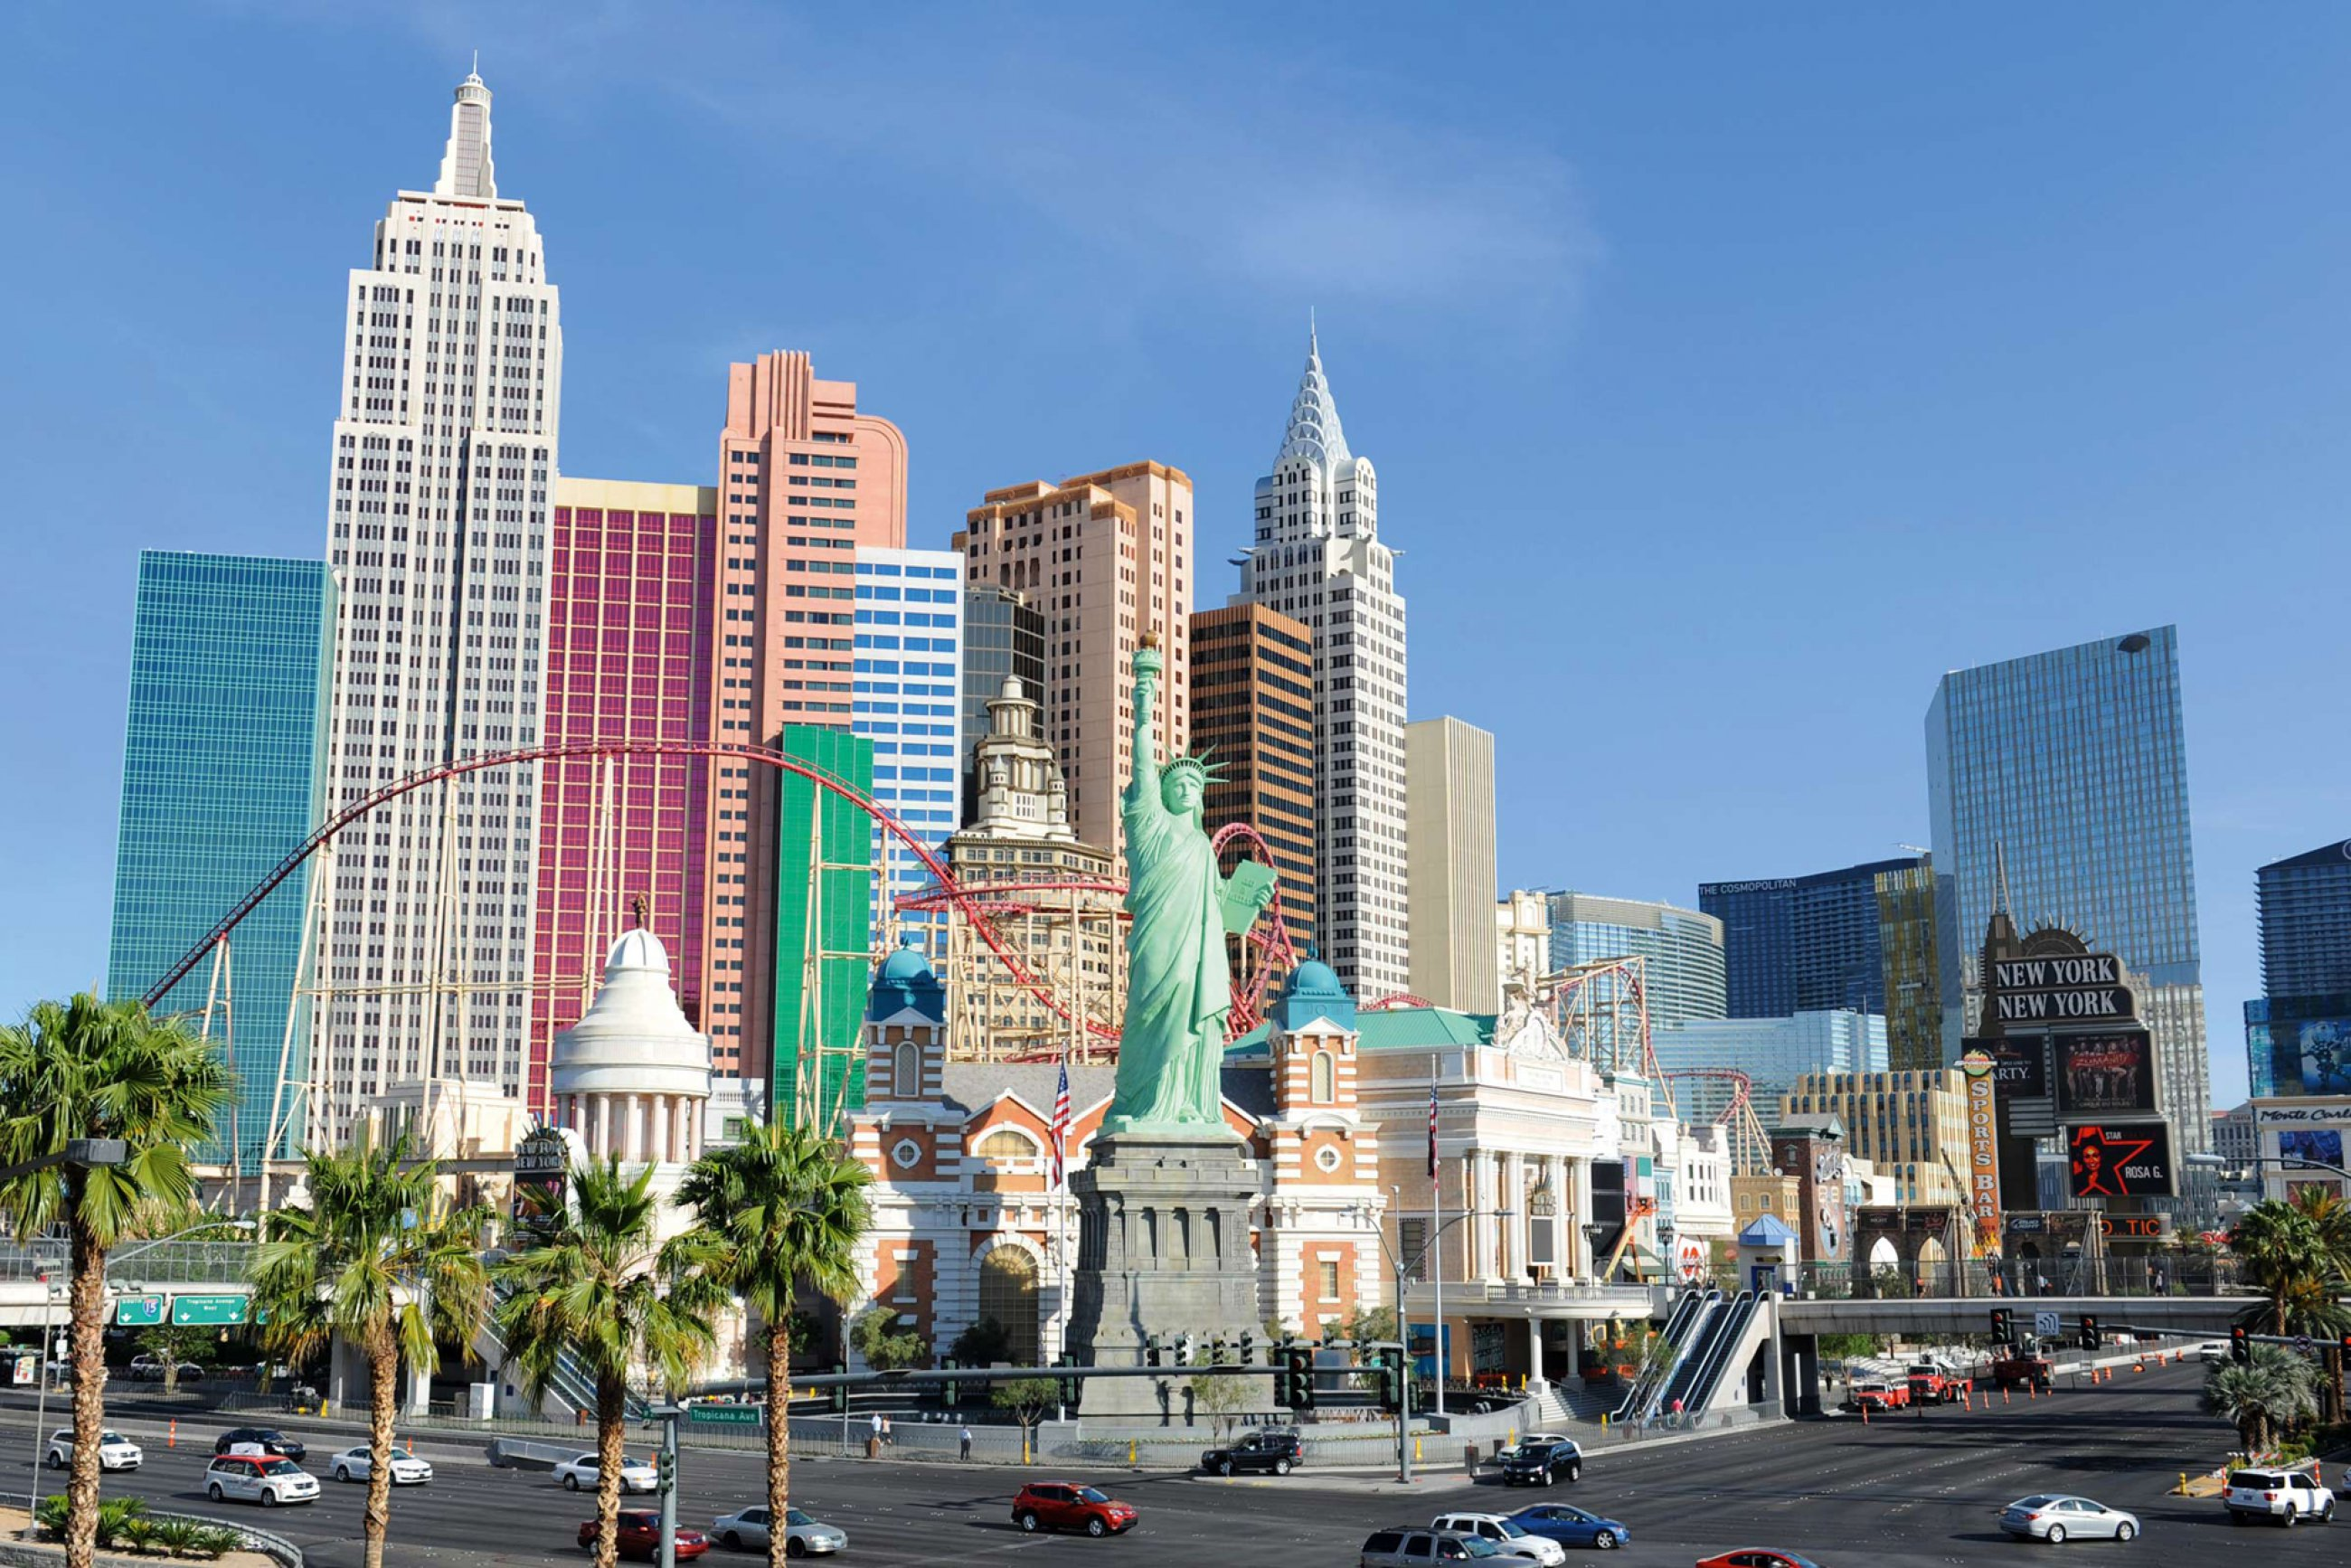 https://bubo.sk/uploads/galleries/5000/las-vegas-a-new-york.jpg